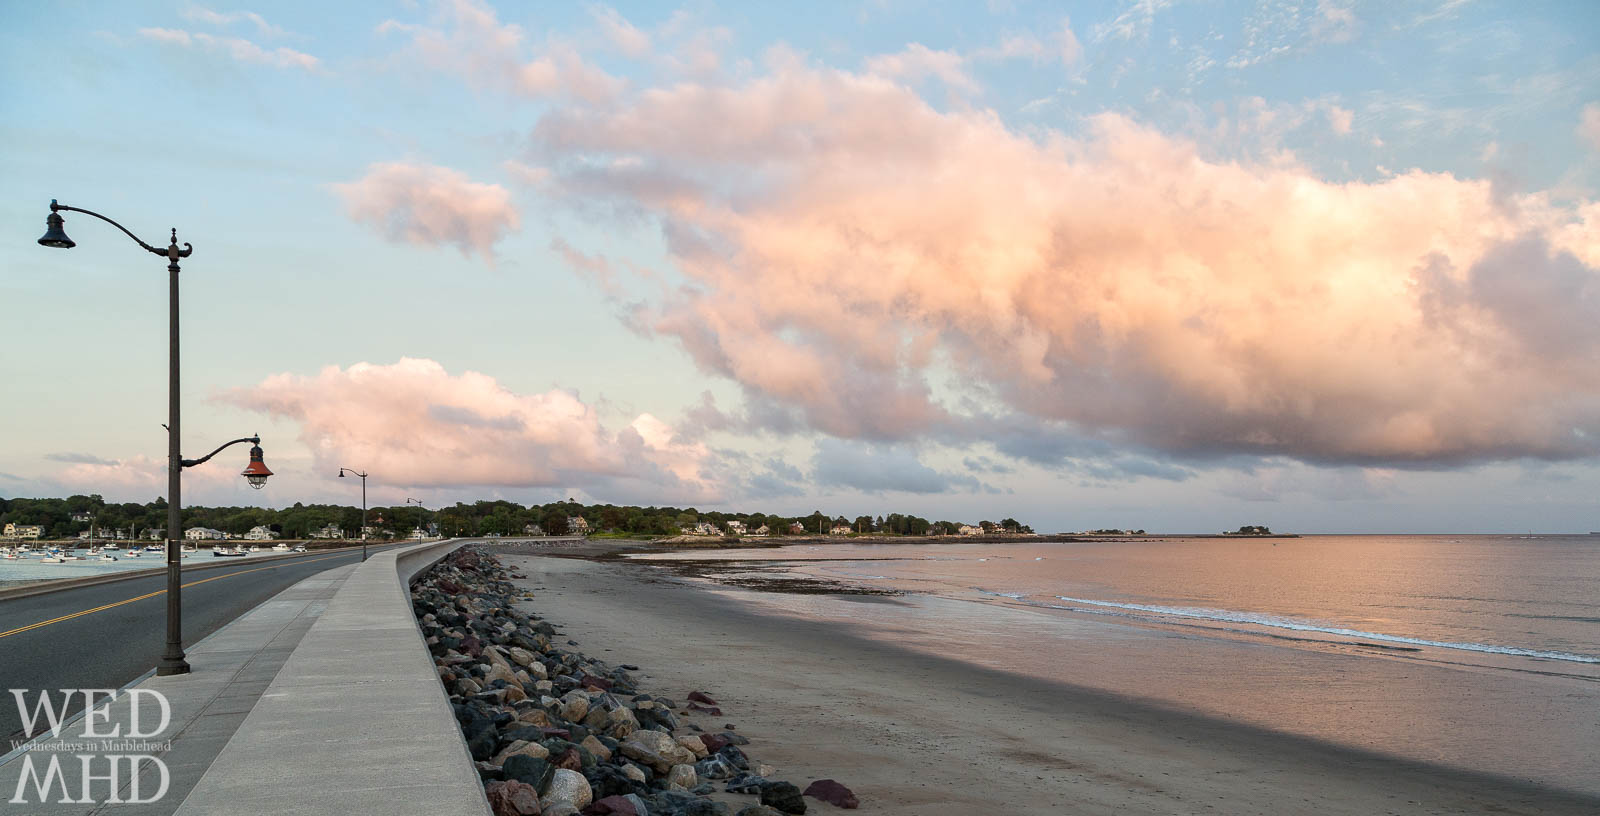 The causeway curves to meet the light of a September sunset reflecting off a cumulous cloud and the still waters below